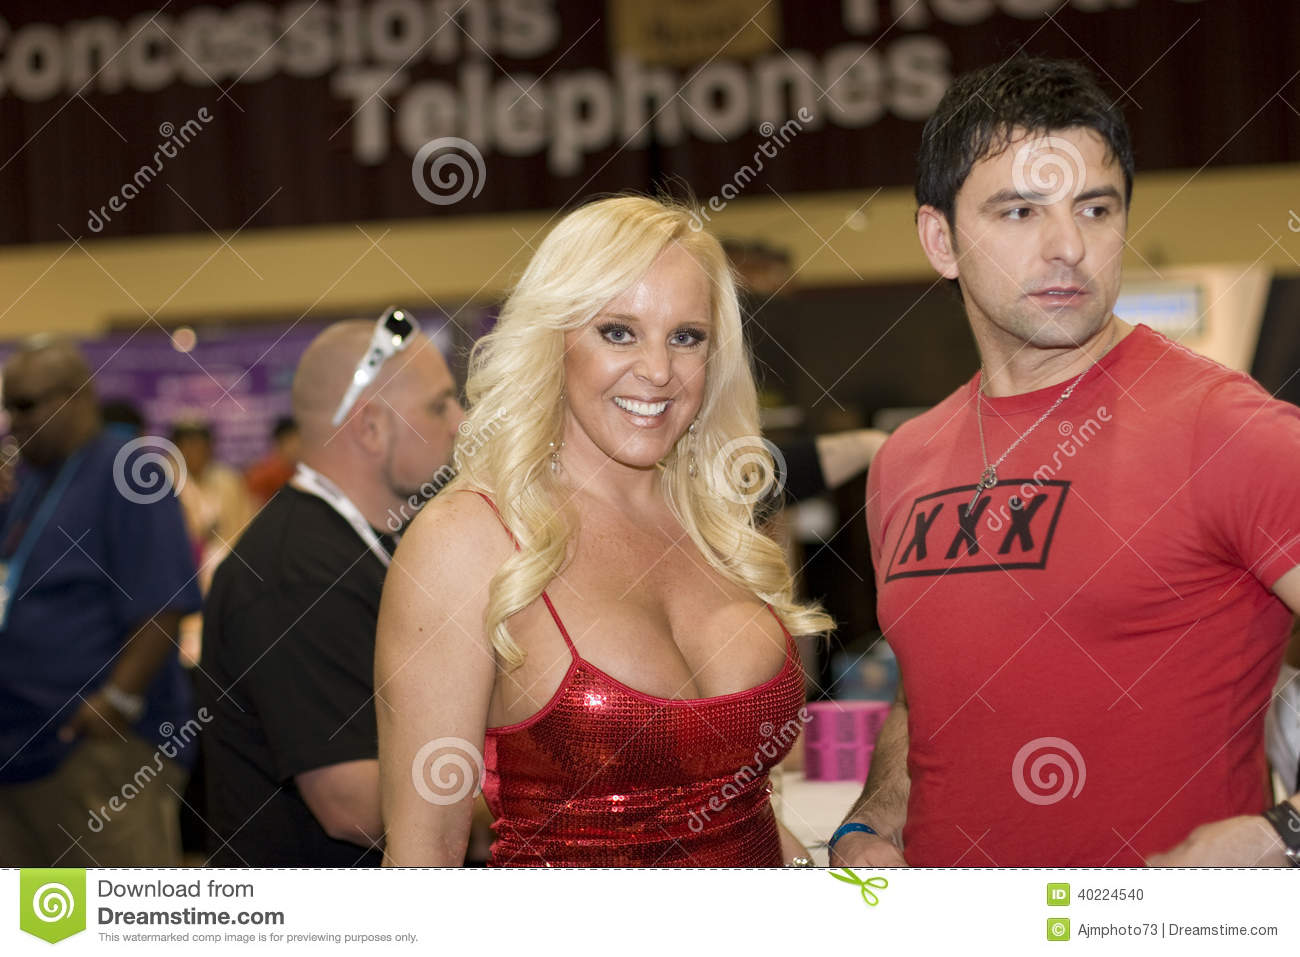 alexis golden at avn convention editorial image - image of vegas